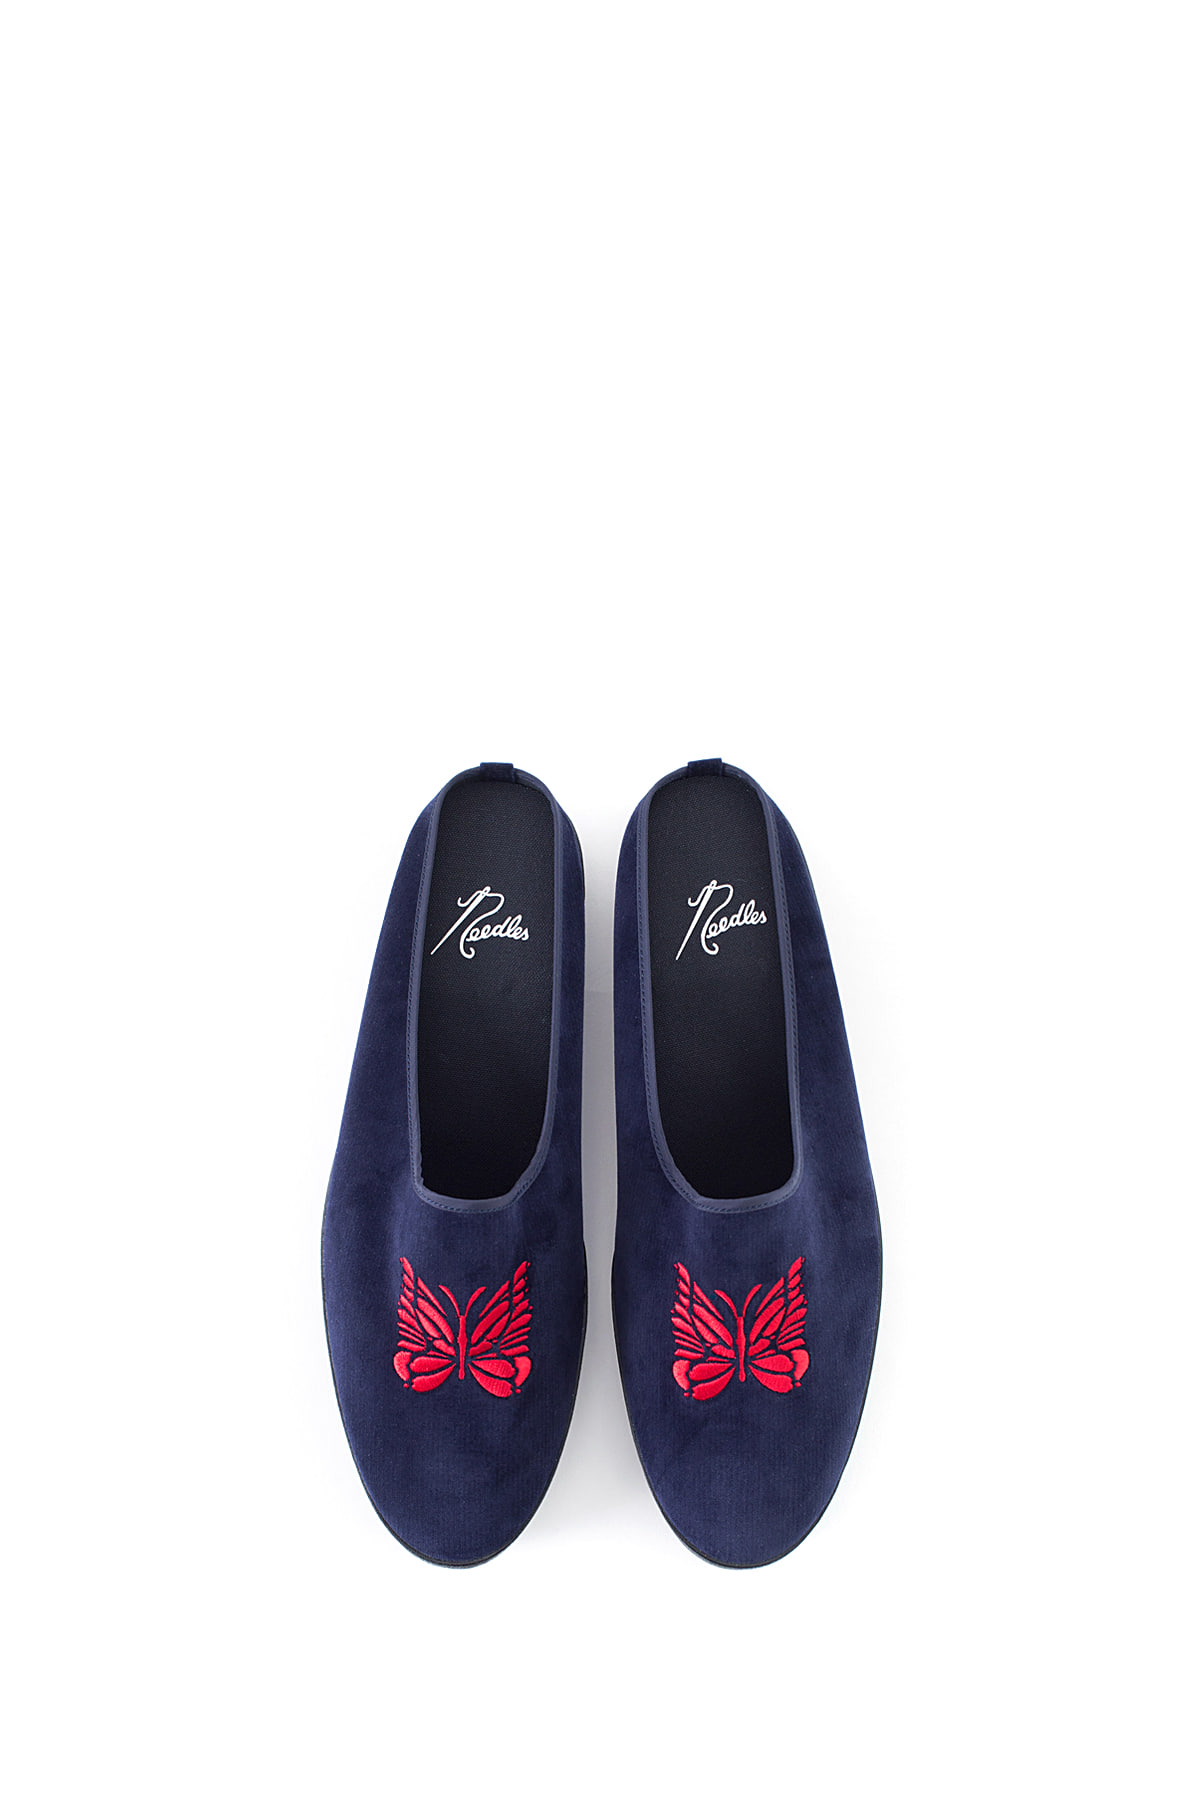 NEEDLES : Papillon Emb. Velveteen Mule (Navy)